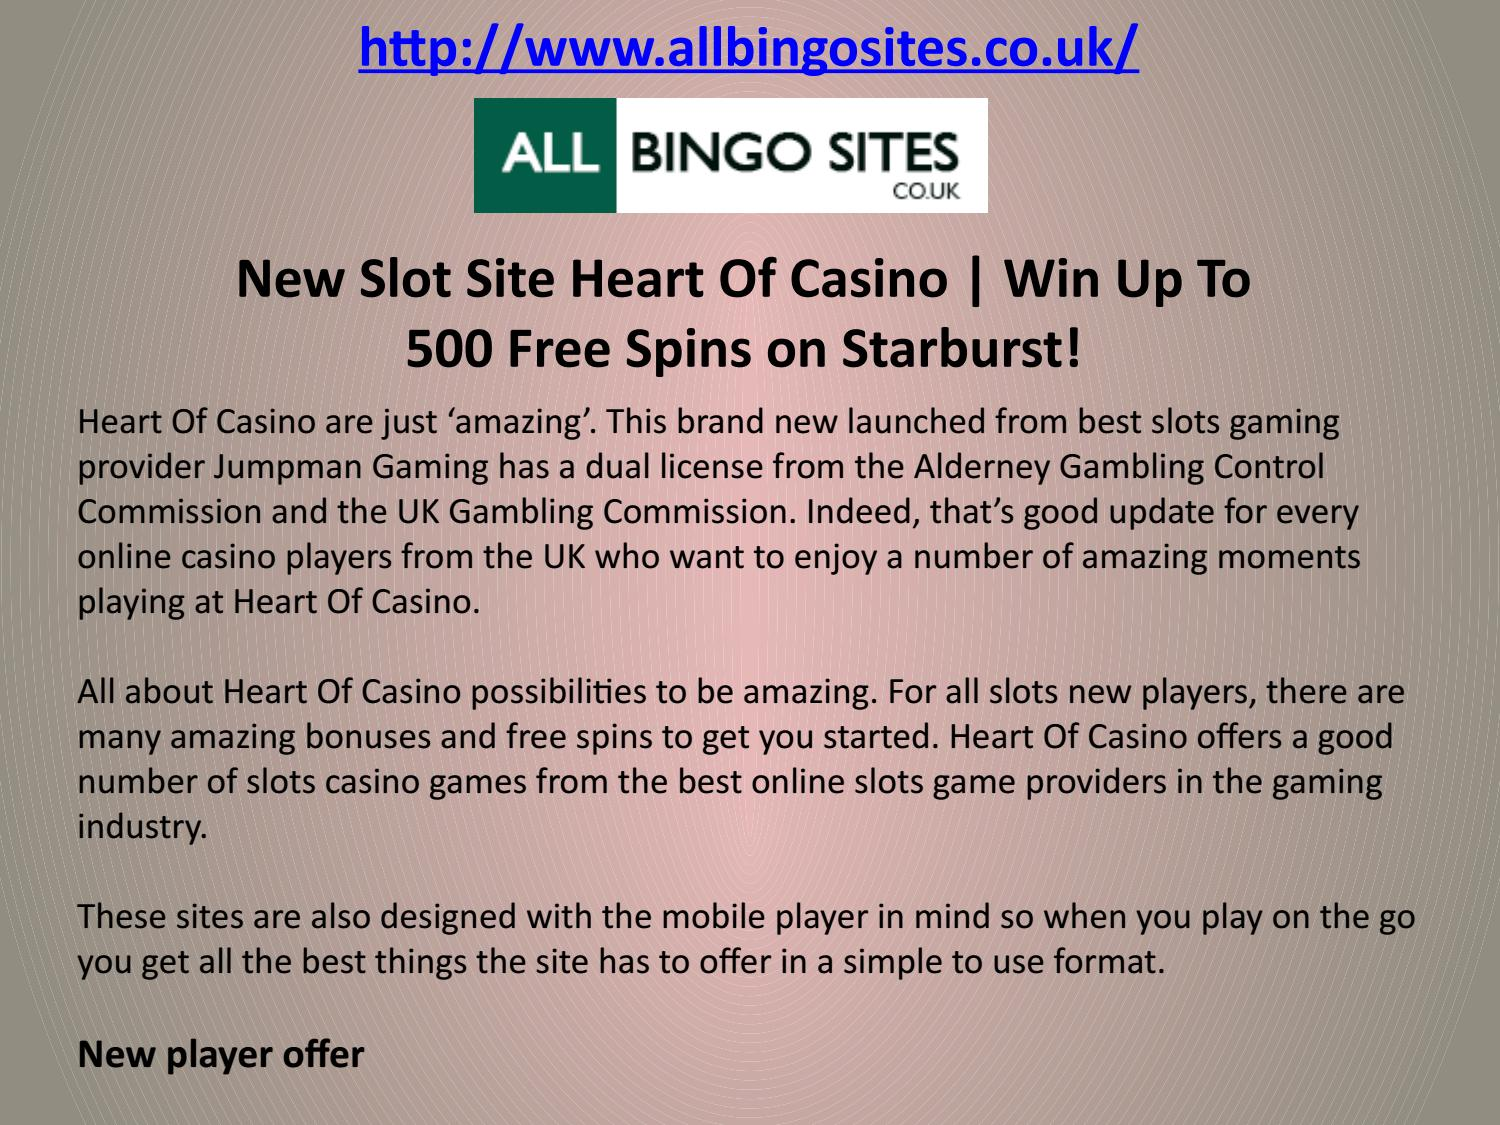 New Slot Site Heart Of Casino Win Up To 500 Free Spins On